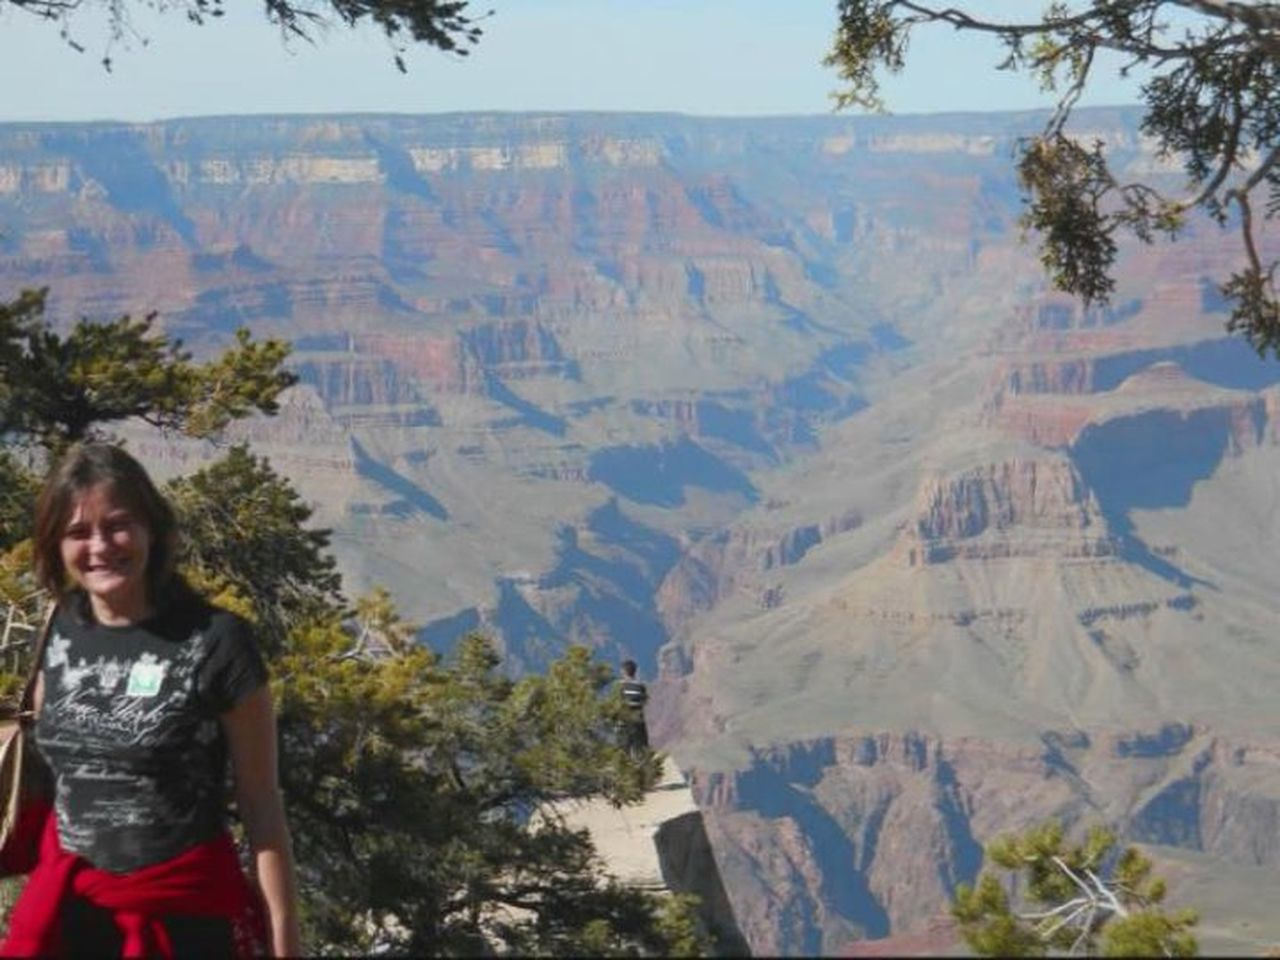 Grand Canyon, Nevada. One Person Landscape Scenics Outdoors Nature Beauty In Nature Canyonview Holiday Trip High Angle View Adventure Beauty In Nature Tranquil Scene